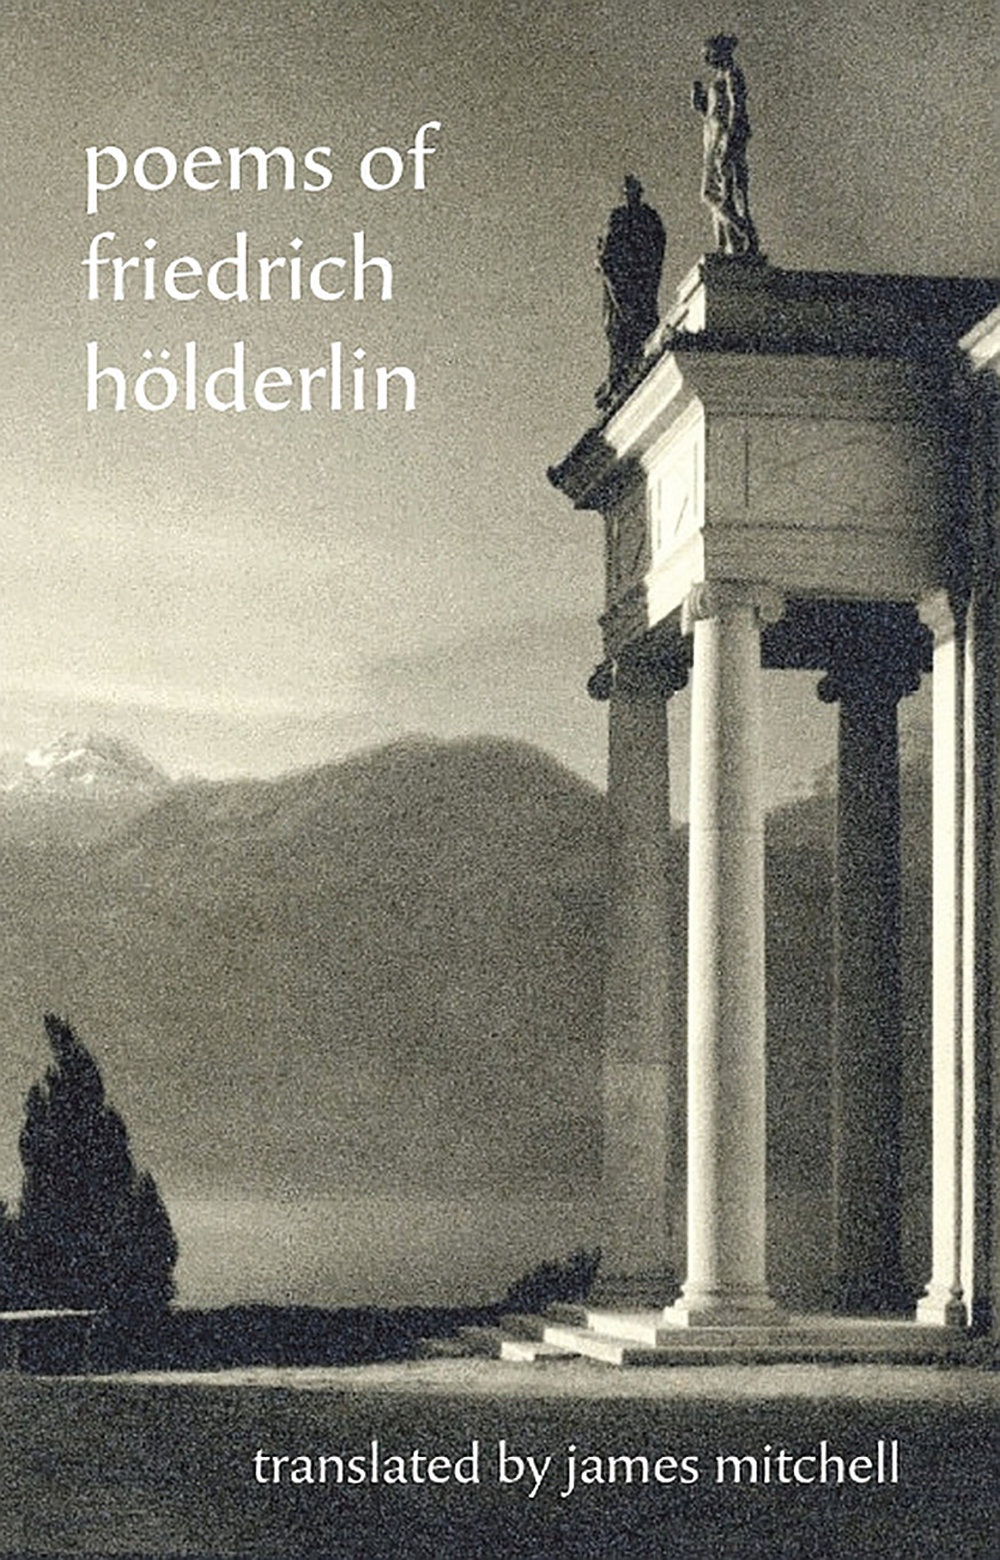 Poems of Friedrich Hölderlin